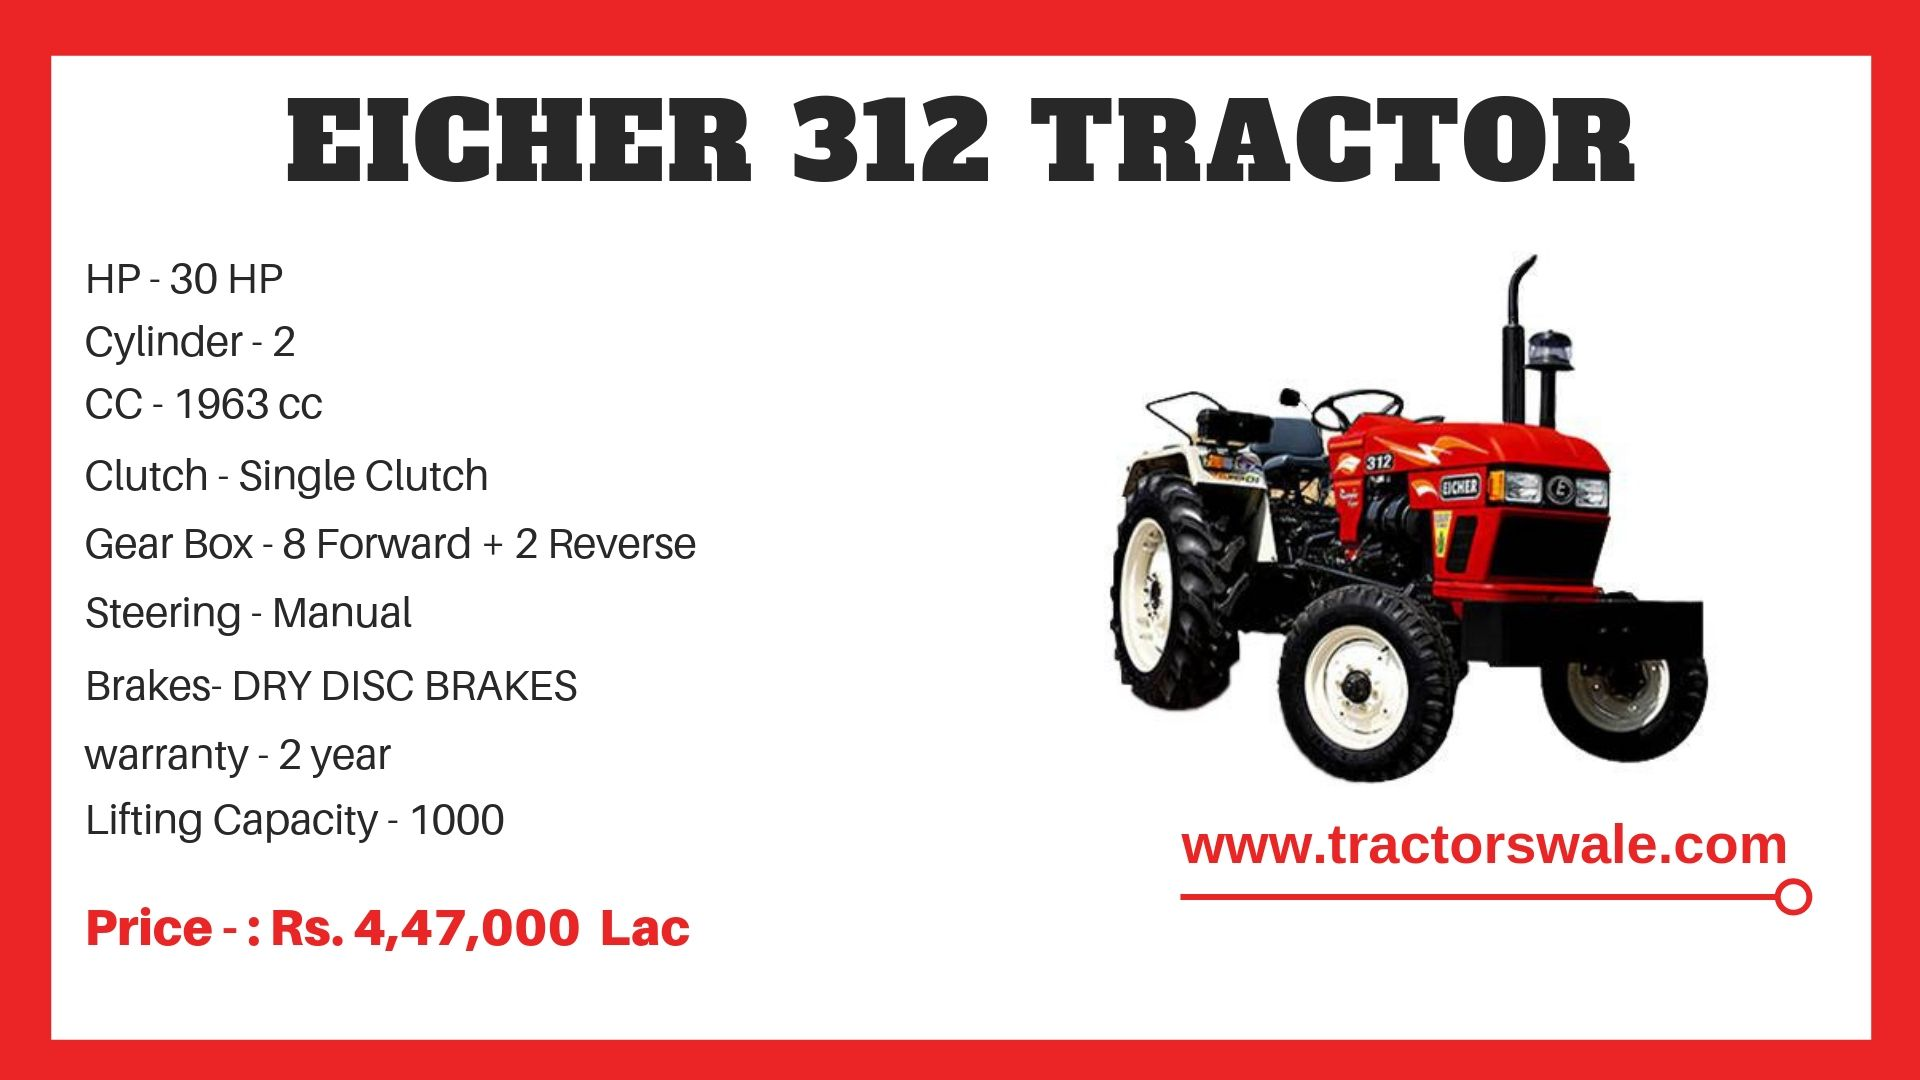 Eicher Tractor 312 Specifications